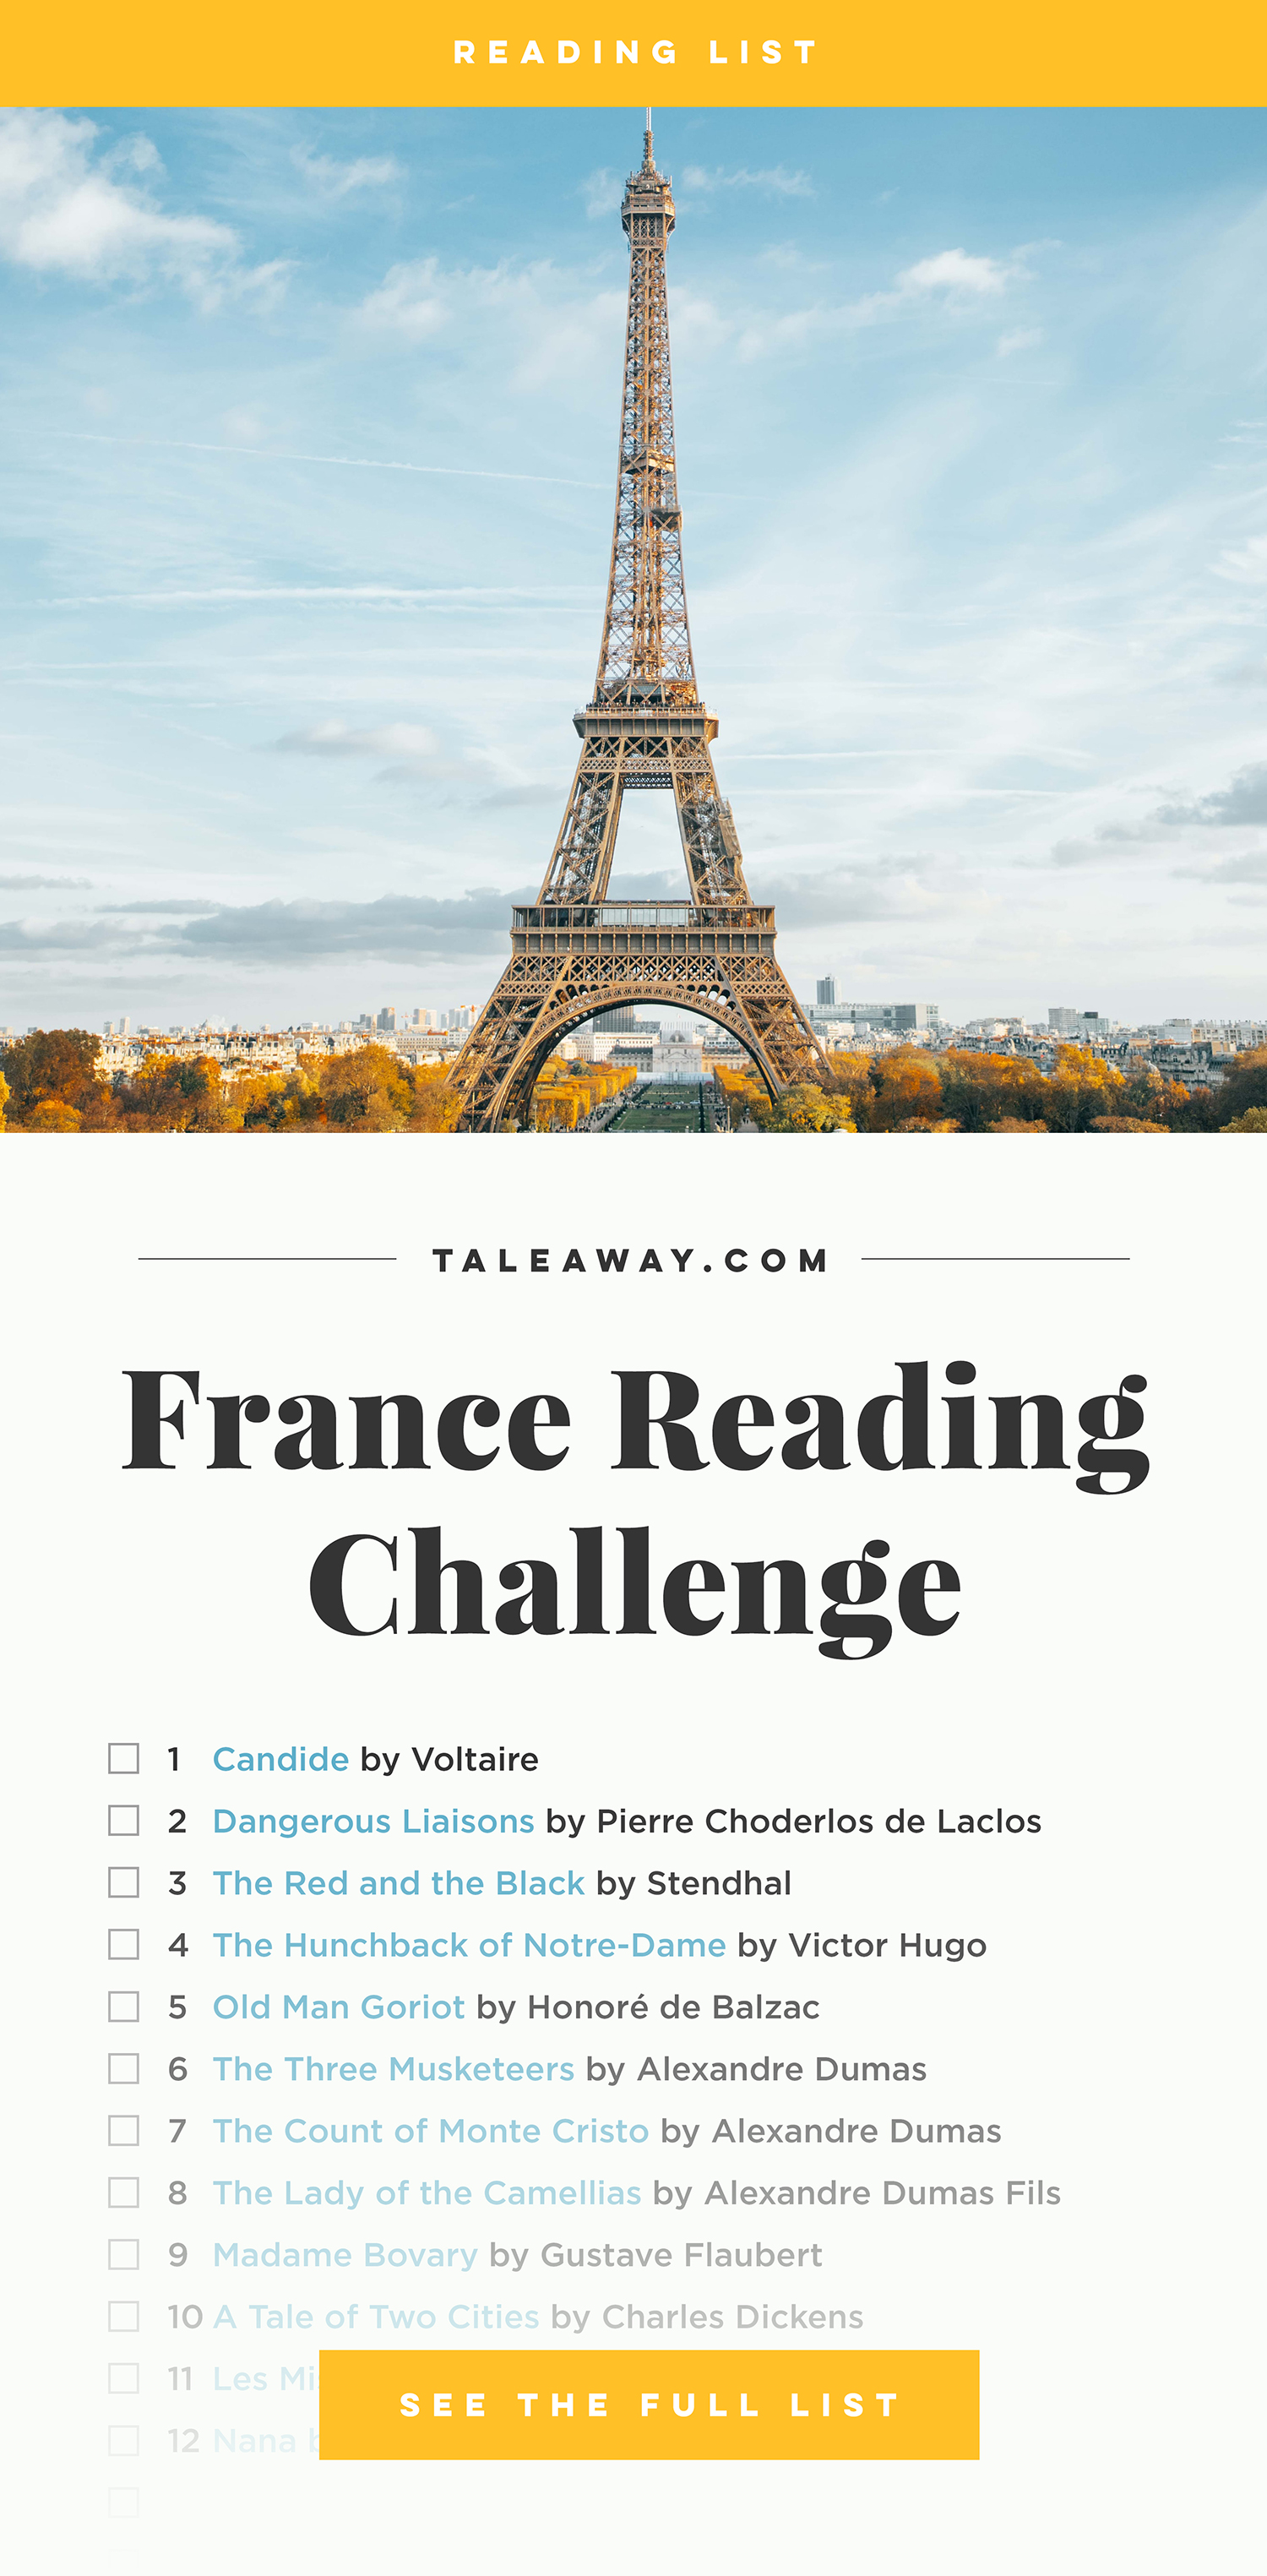 Books Set In France. Visit www.taleway.com to find books from around the world. french books, french novels, best books set in france, popular books set in france, books about france, books about french culture, french reading challenge, french reading list, books set in paris, paris novels, novels set in paris, french books to read, books to read before going to france, novels set in france, books to read about france, french english books, livres francais, famous french authors, france packing list, france travel, romance books set in france, mystery books set in france, historical fiction set in france, france travel books, classic french books, famous french novels, best books about france, best french novels